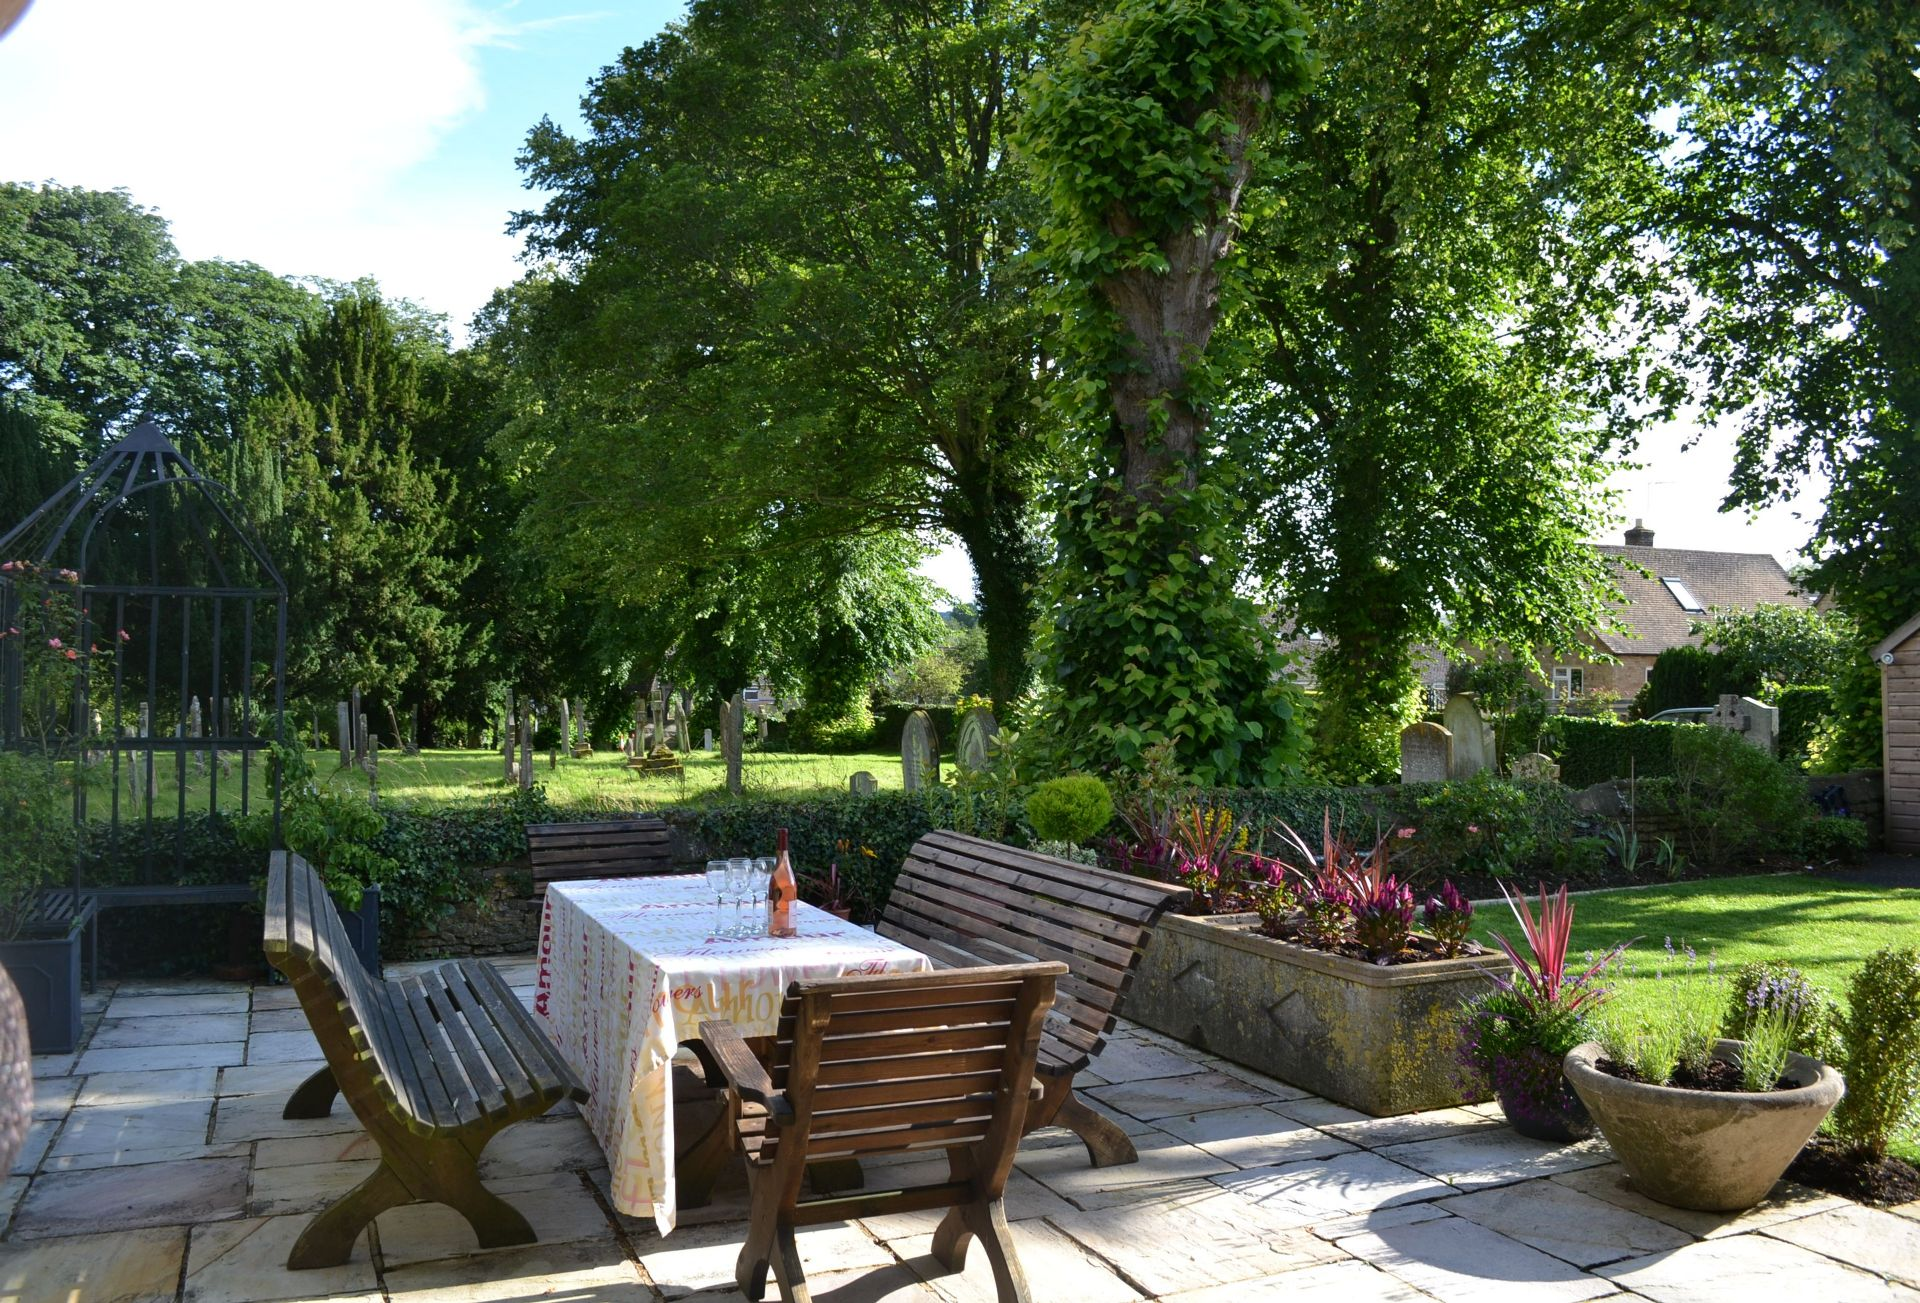 The garden includes a lawn and terrace area with a table and seating for six